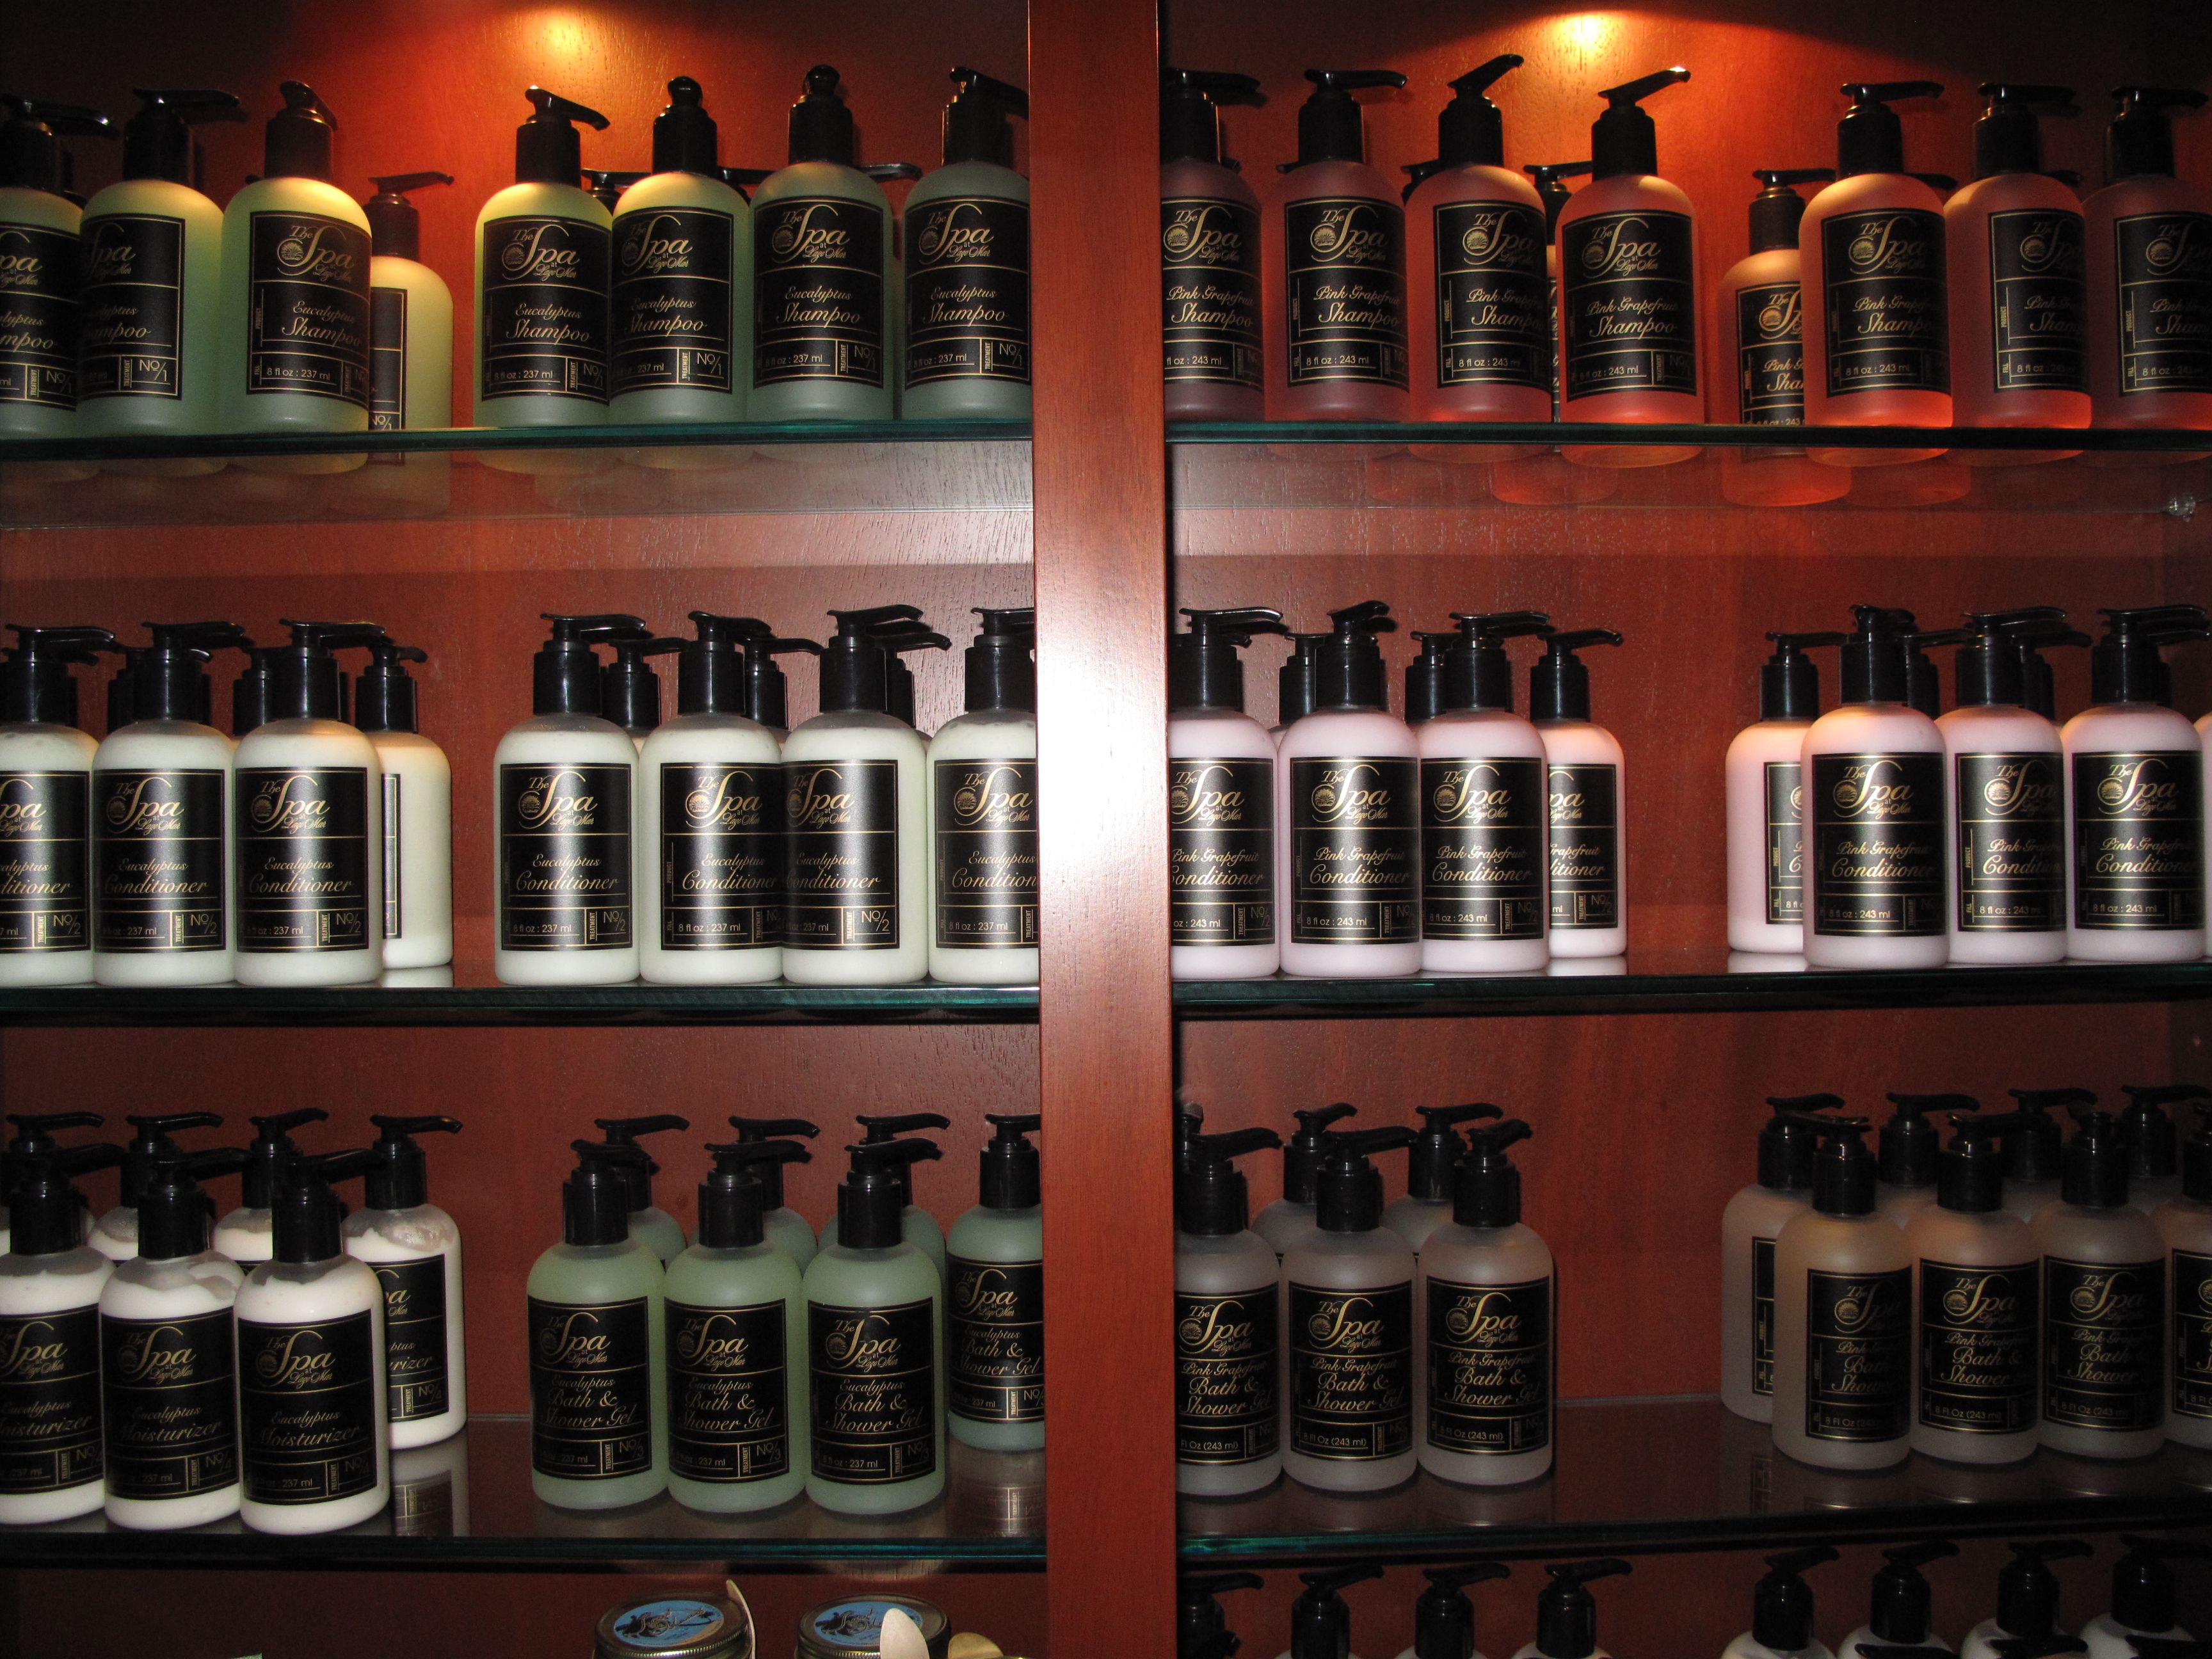 Lotions and potions at The Spa at #LagoMar #SpaLagoMar #FloridaSpa http://www.lagomar.com/experience/spa.php